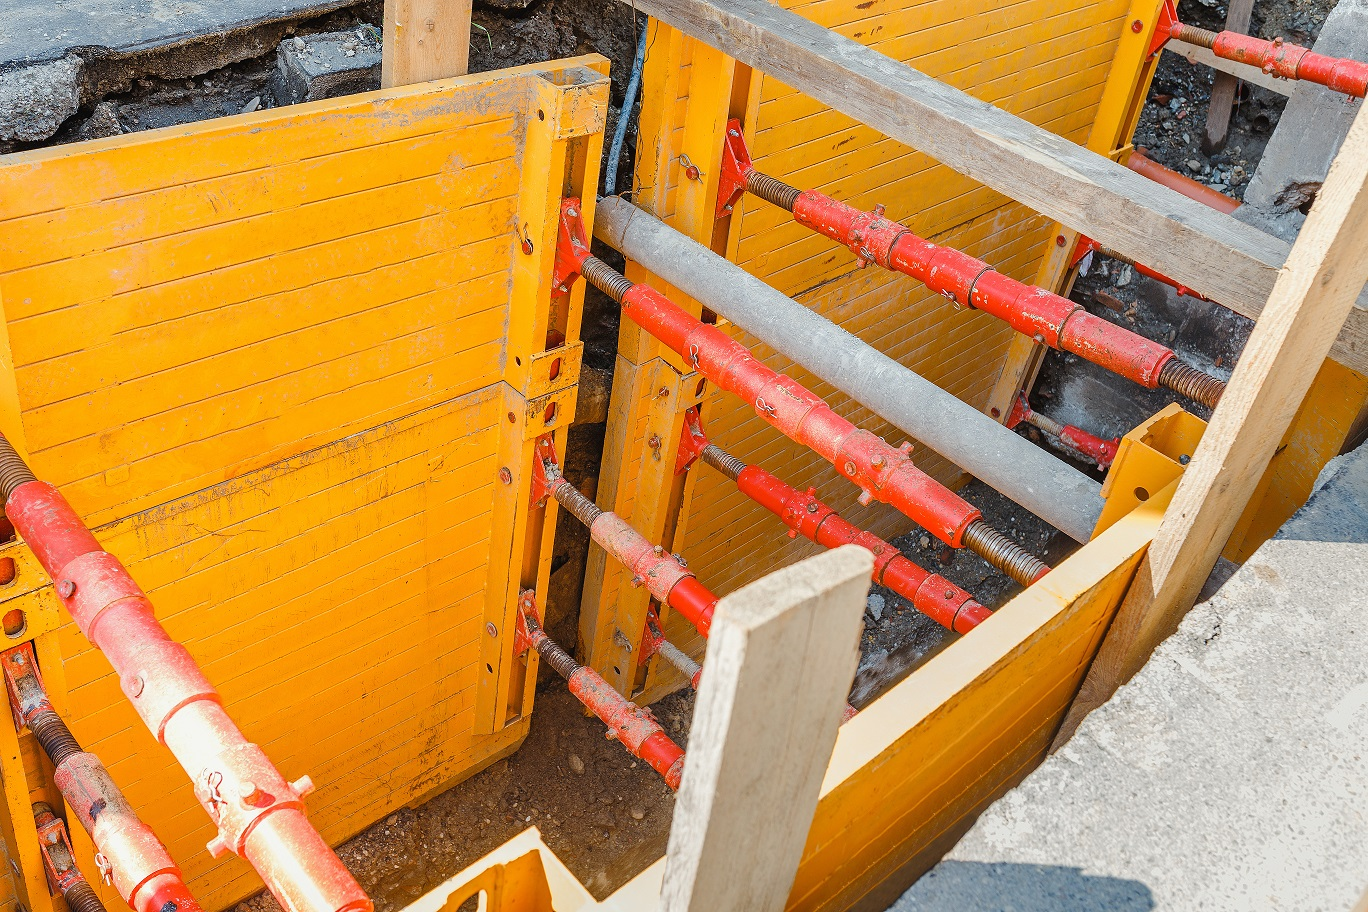 Construction firm agrees settlement with OSHA, pays $380K penalty and to provide Job Site Inspections on Trenching and Excavation Hazards